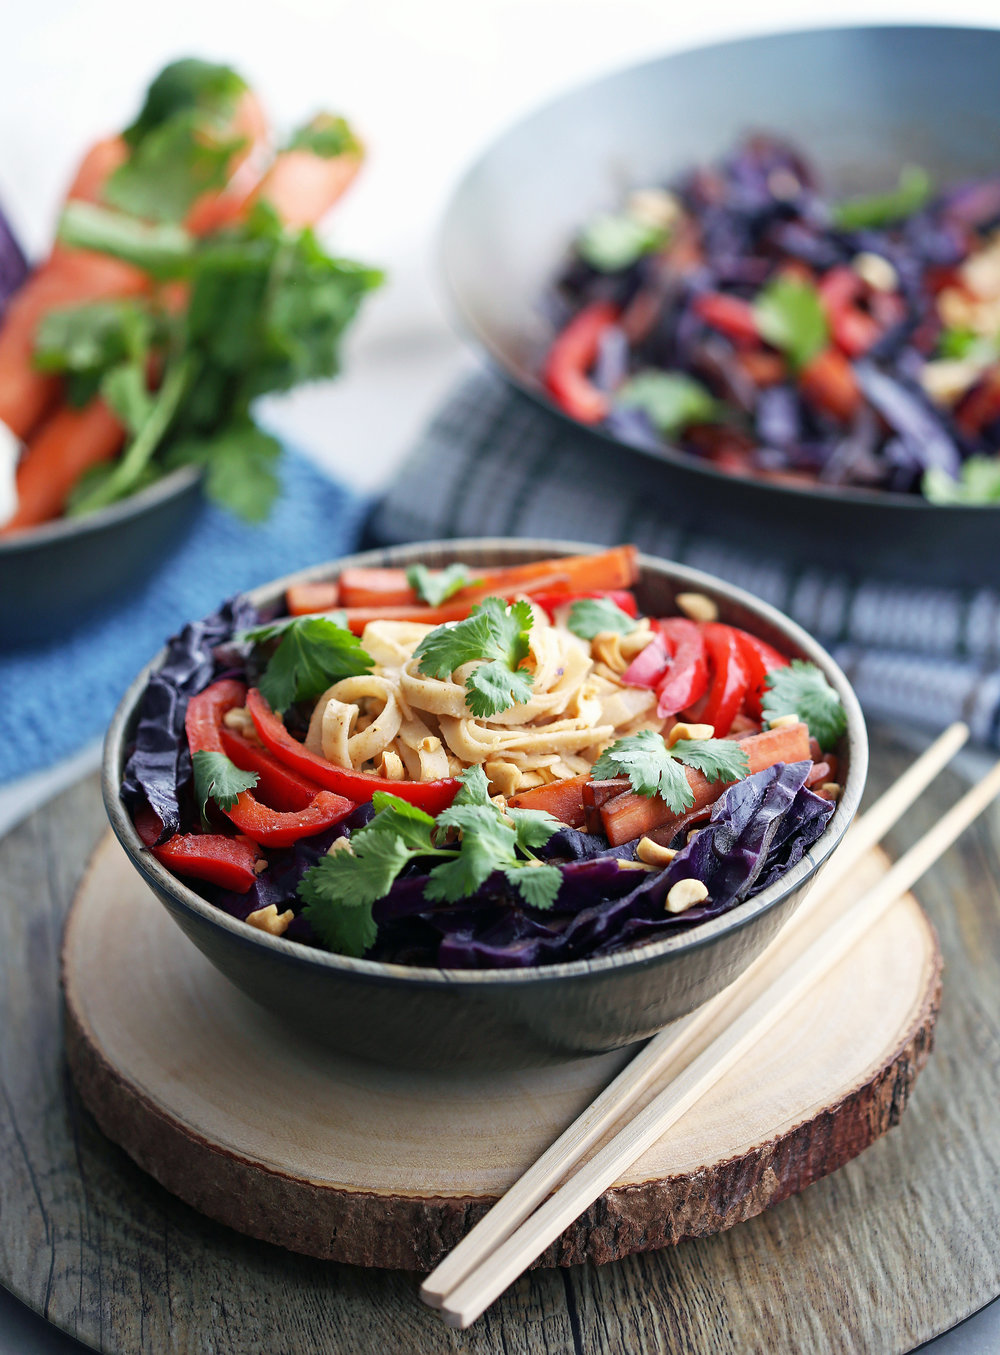 Colourful Stir-Fry Vegetables and Noodles with Peanut Sauce in a wooden bowl.